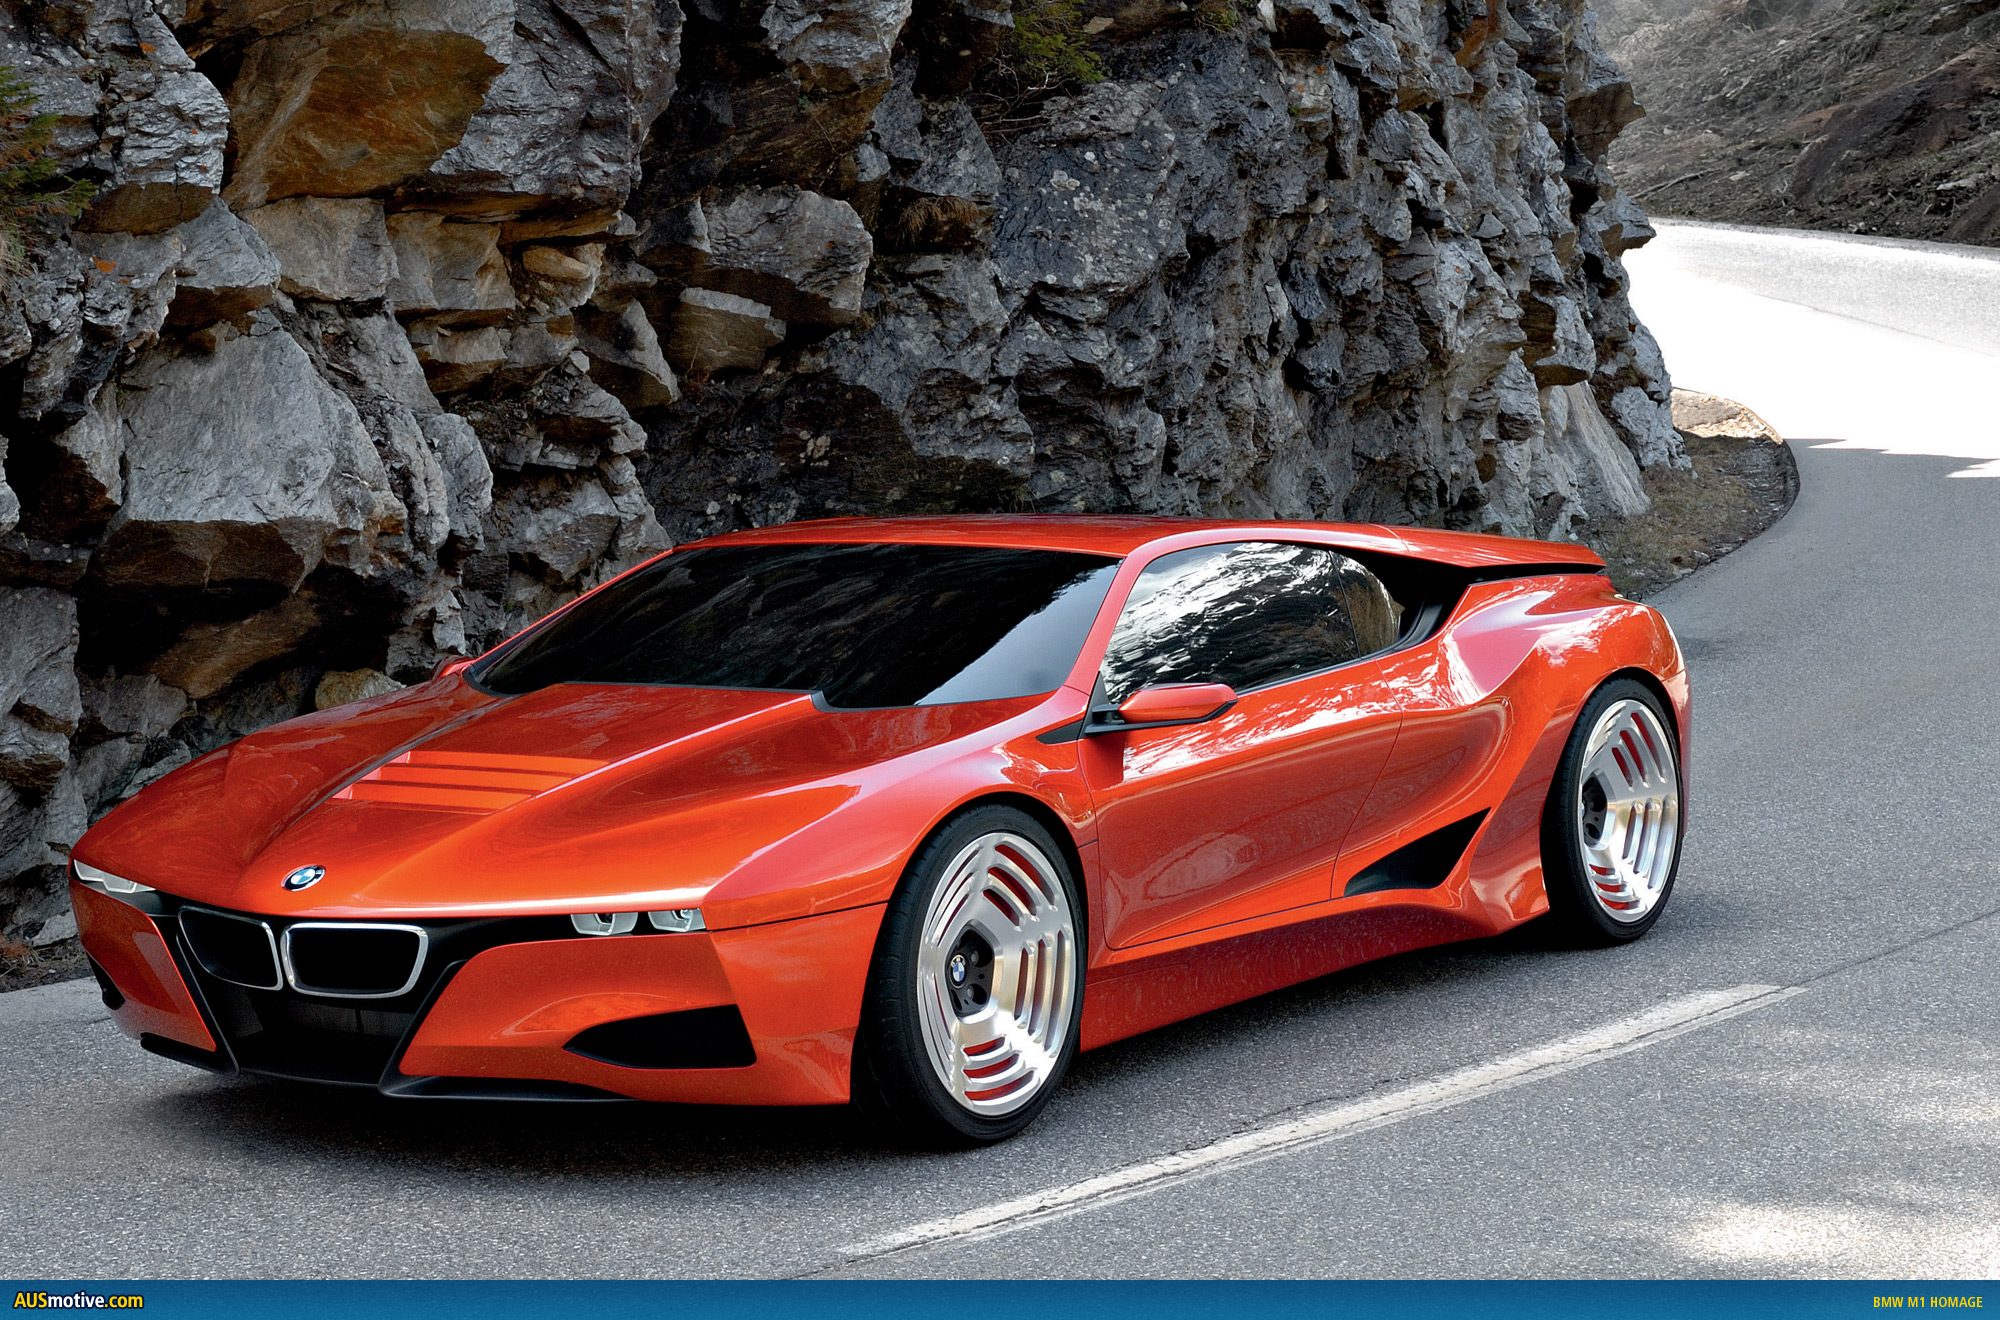 AUSmotive.com » BMW M1 Homage to show off in Melbourne